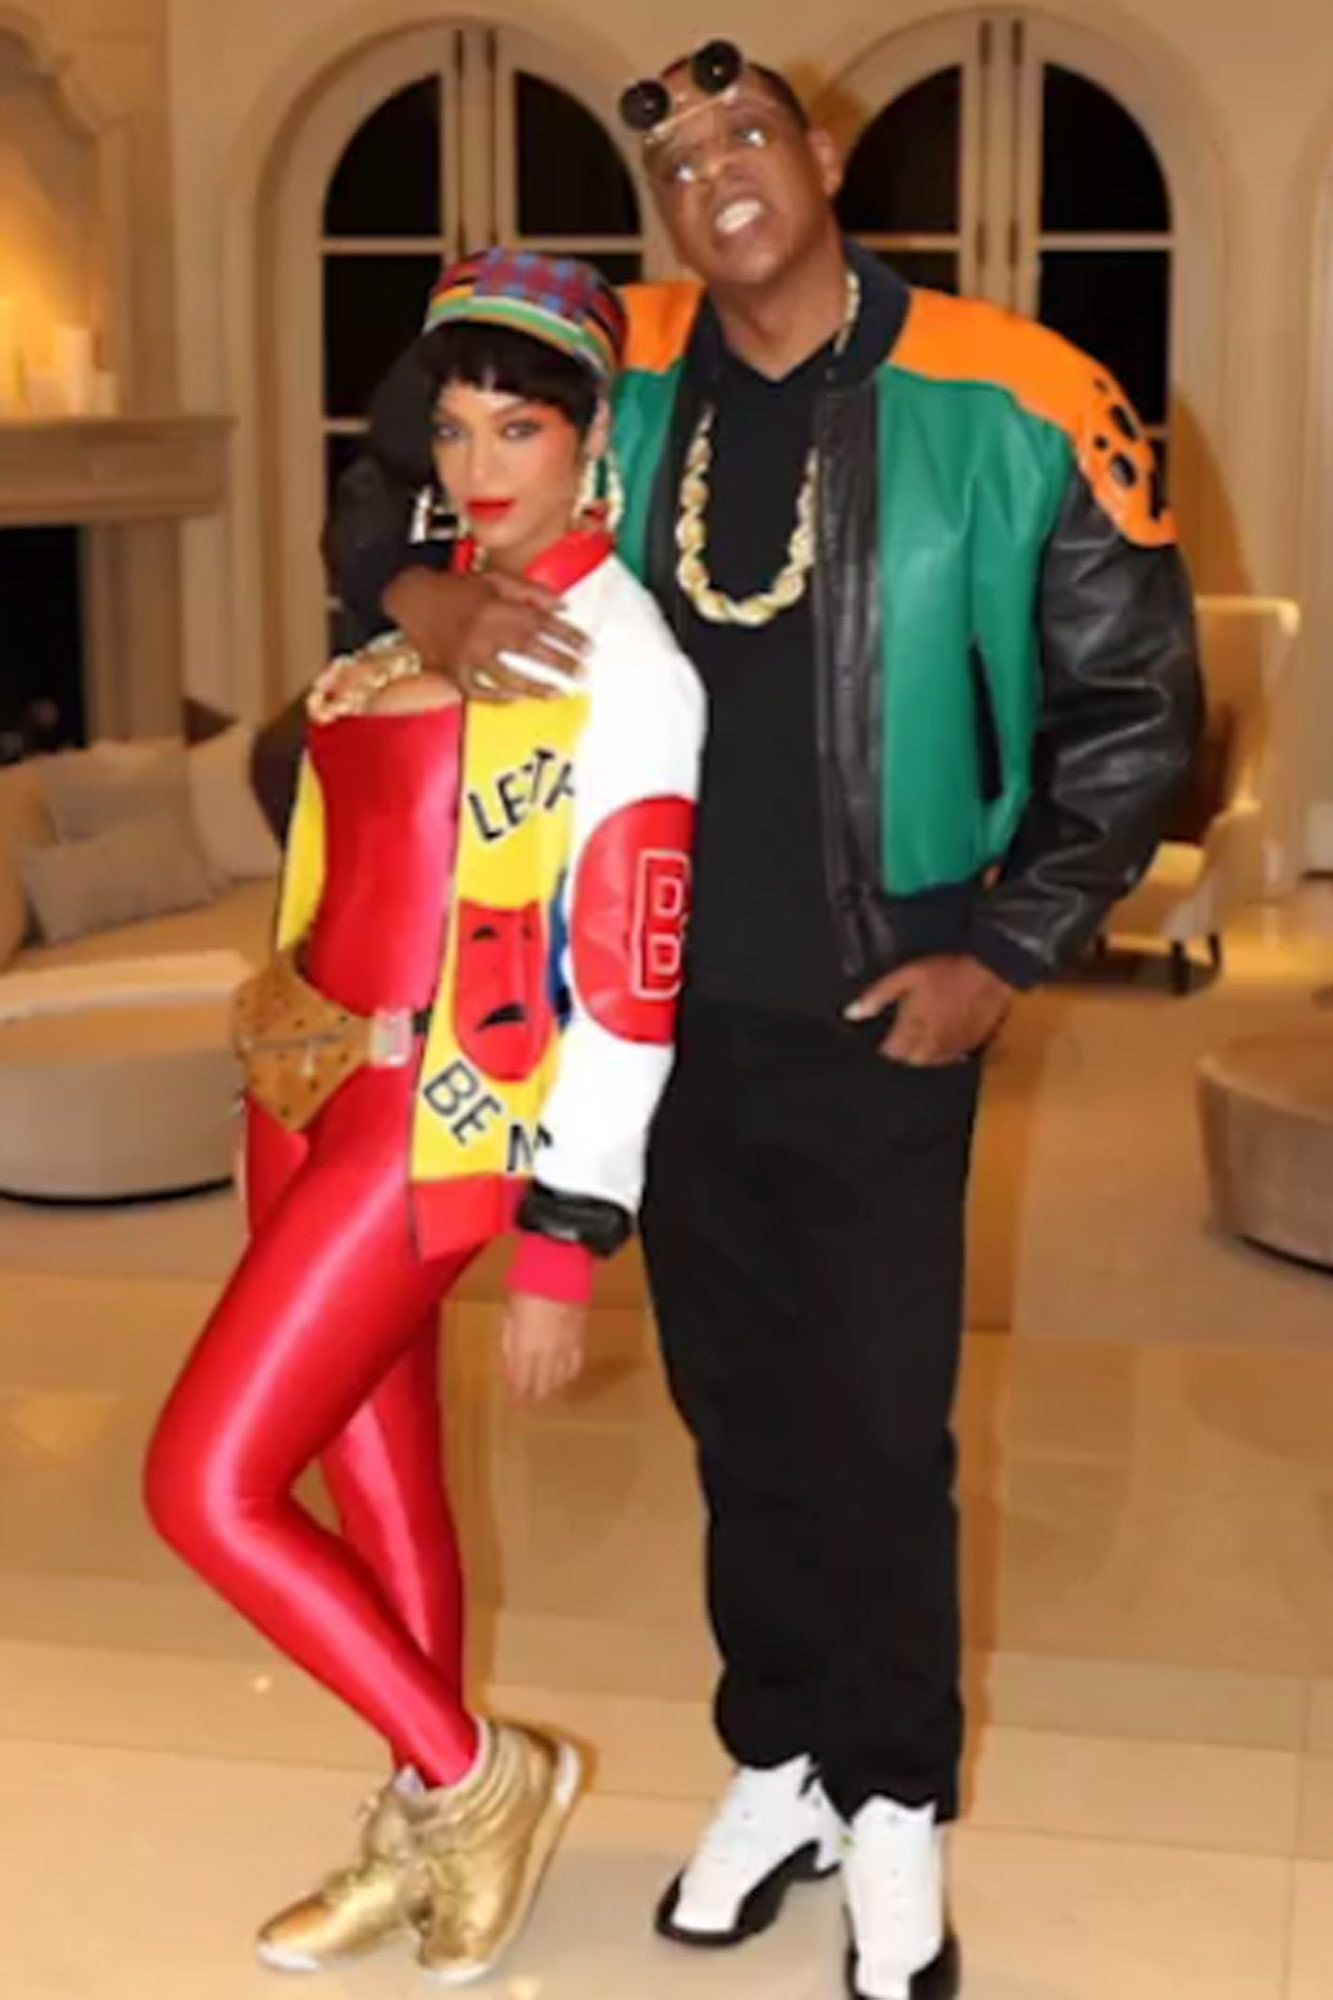 Beyoncé and JAYZ's Family Halloween Costumes Through The